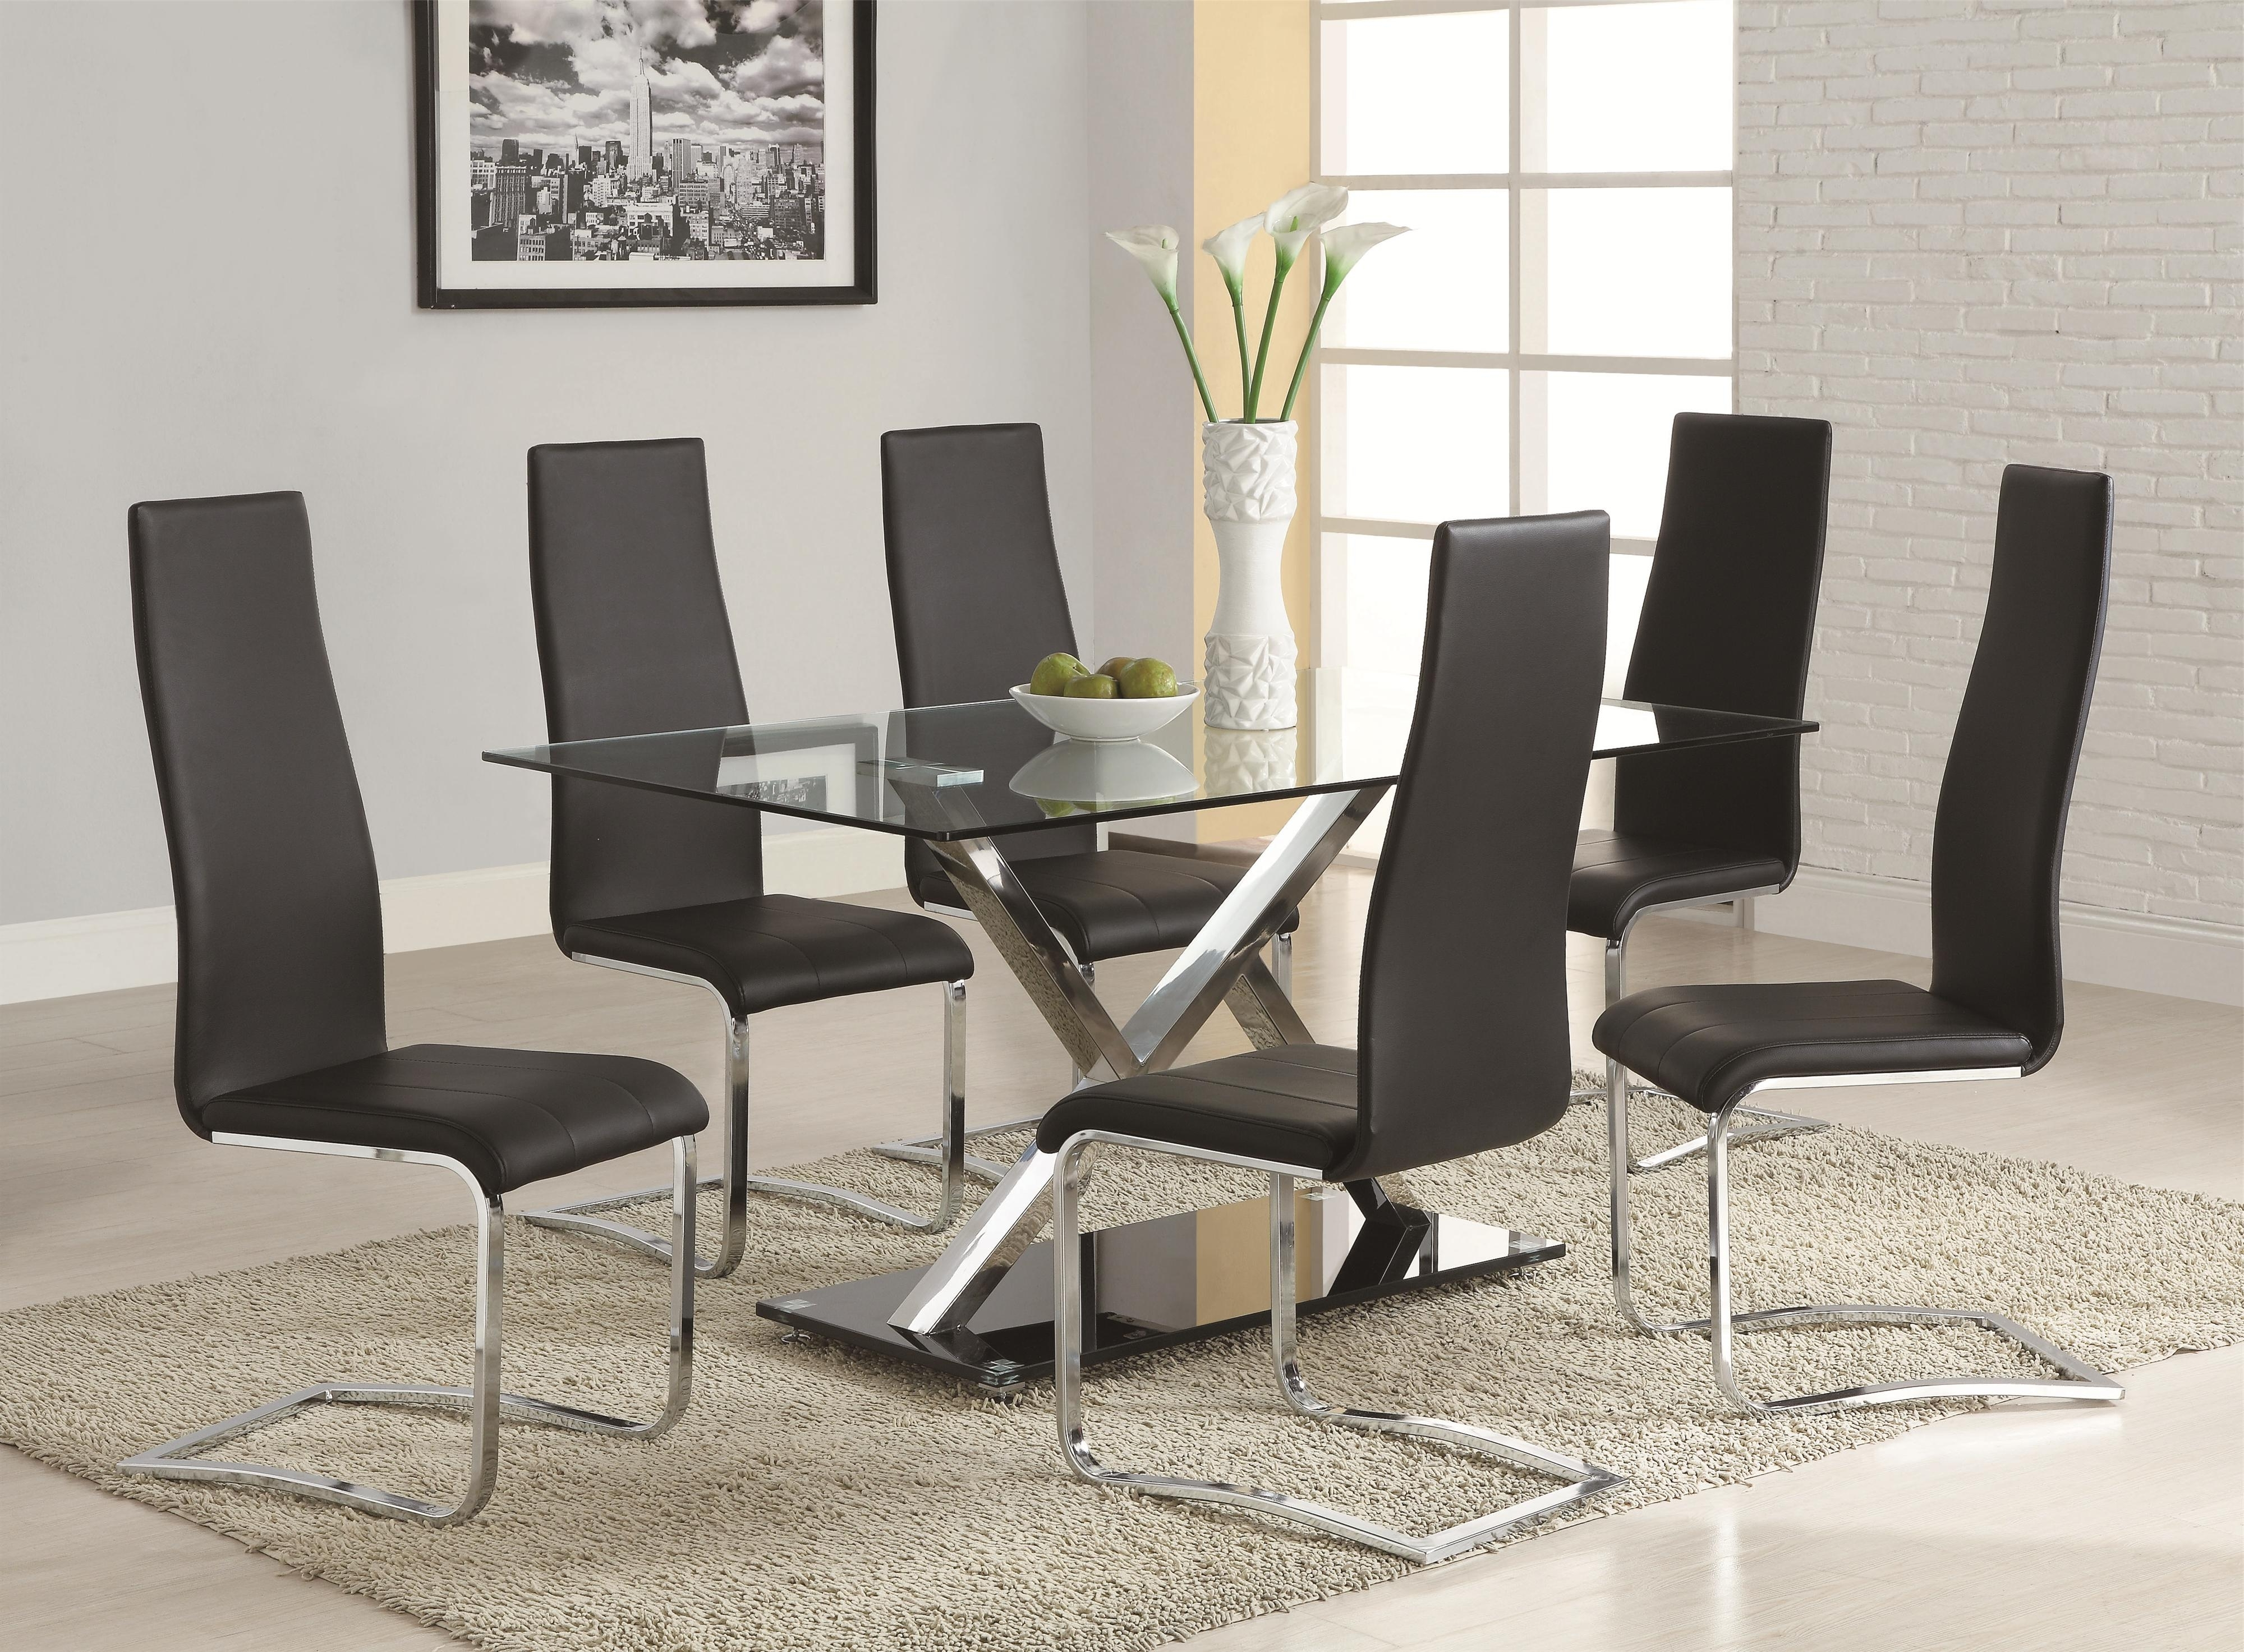 Most Recent Dining Table Chair Sets In Coaster Modern Dining Contemporary Dining Room Set (View 19 of 25)